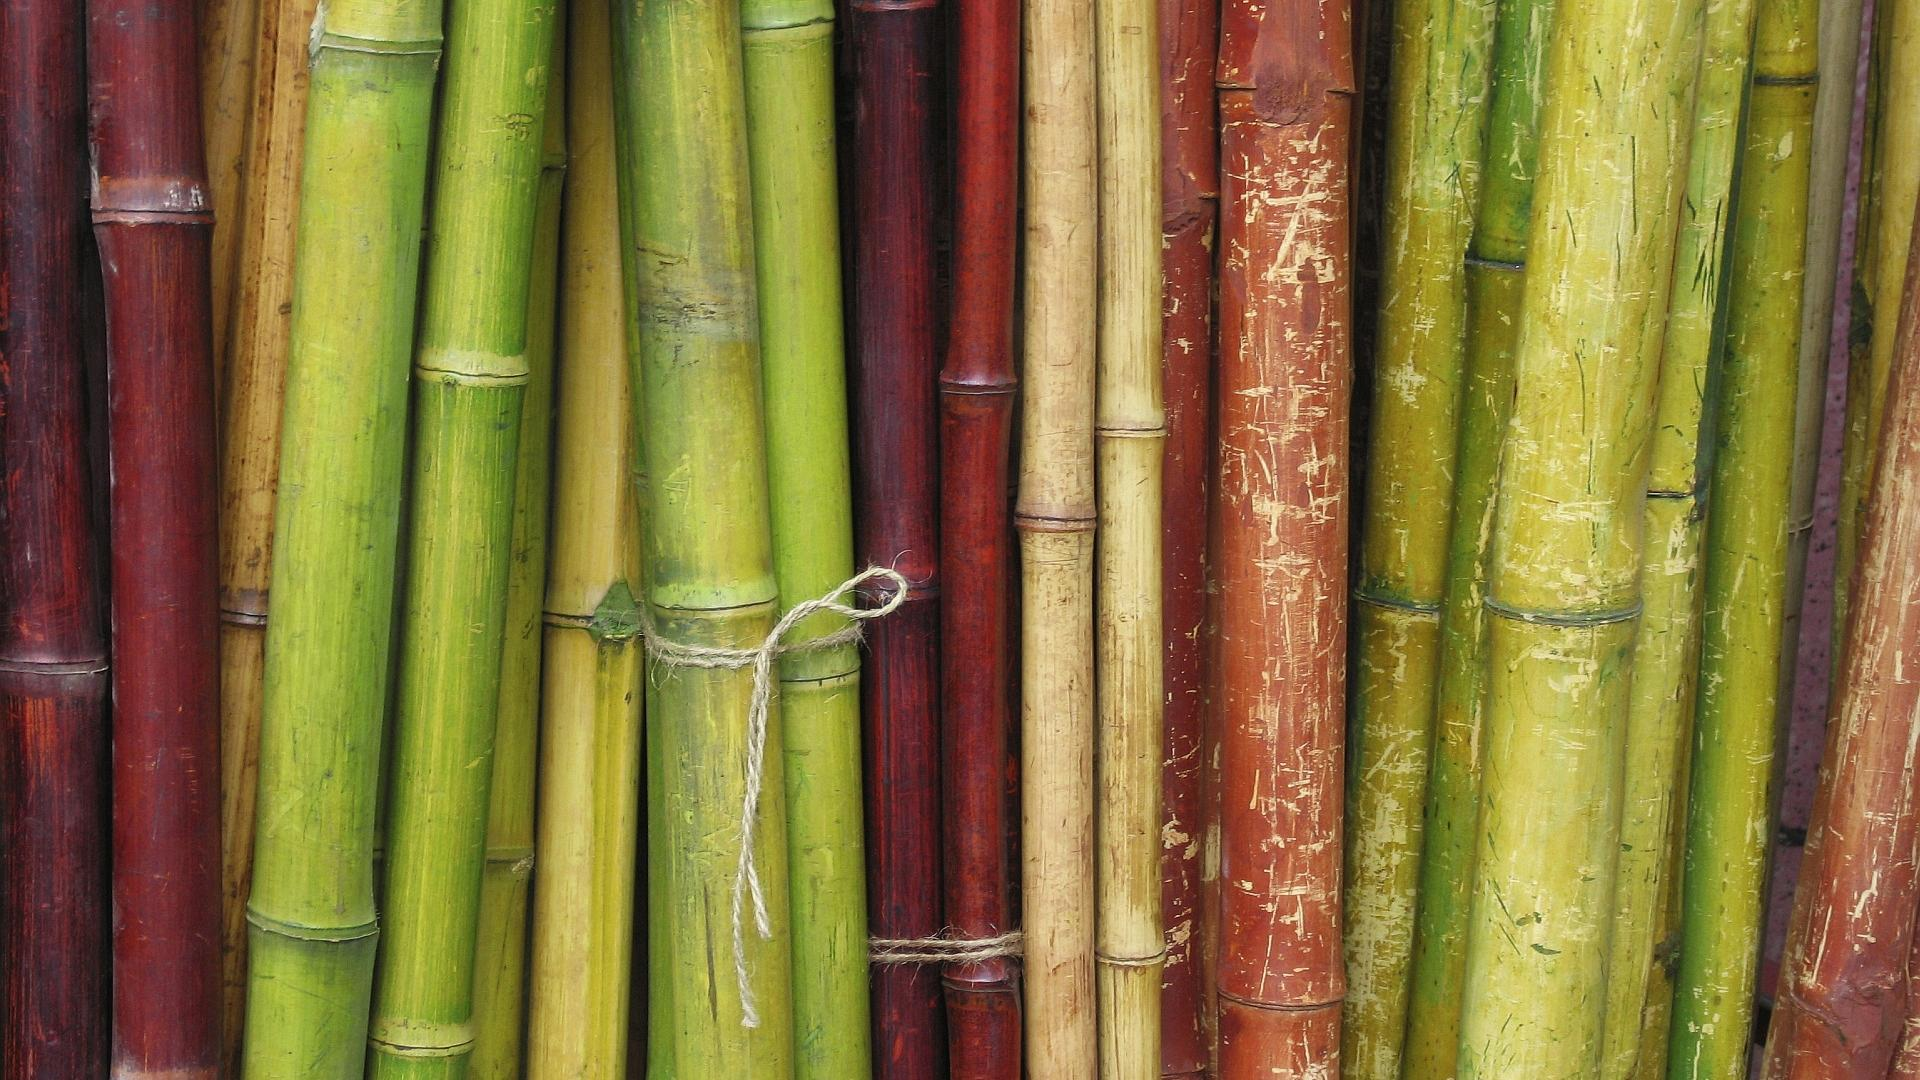 bamboo wallpaper by doantrangnguyen - photo #19